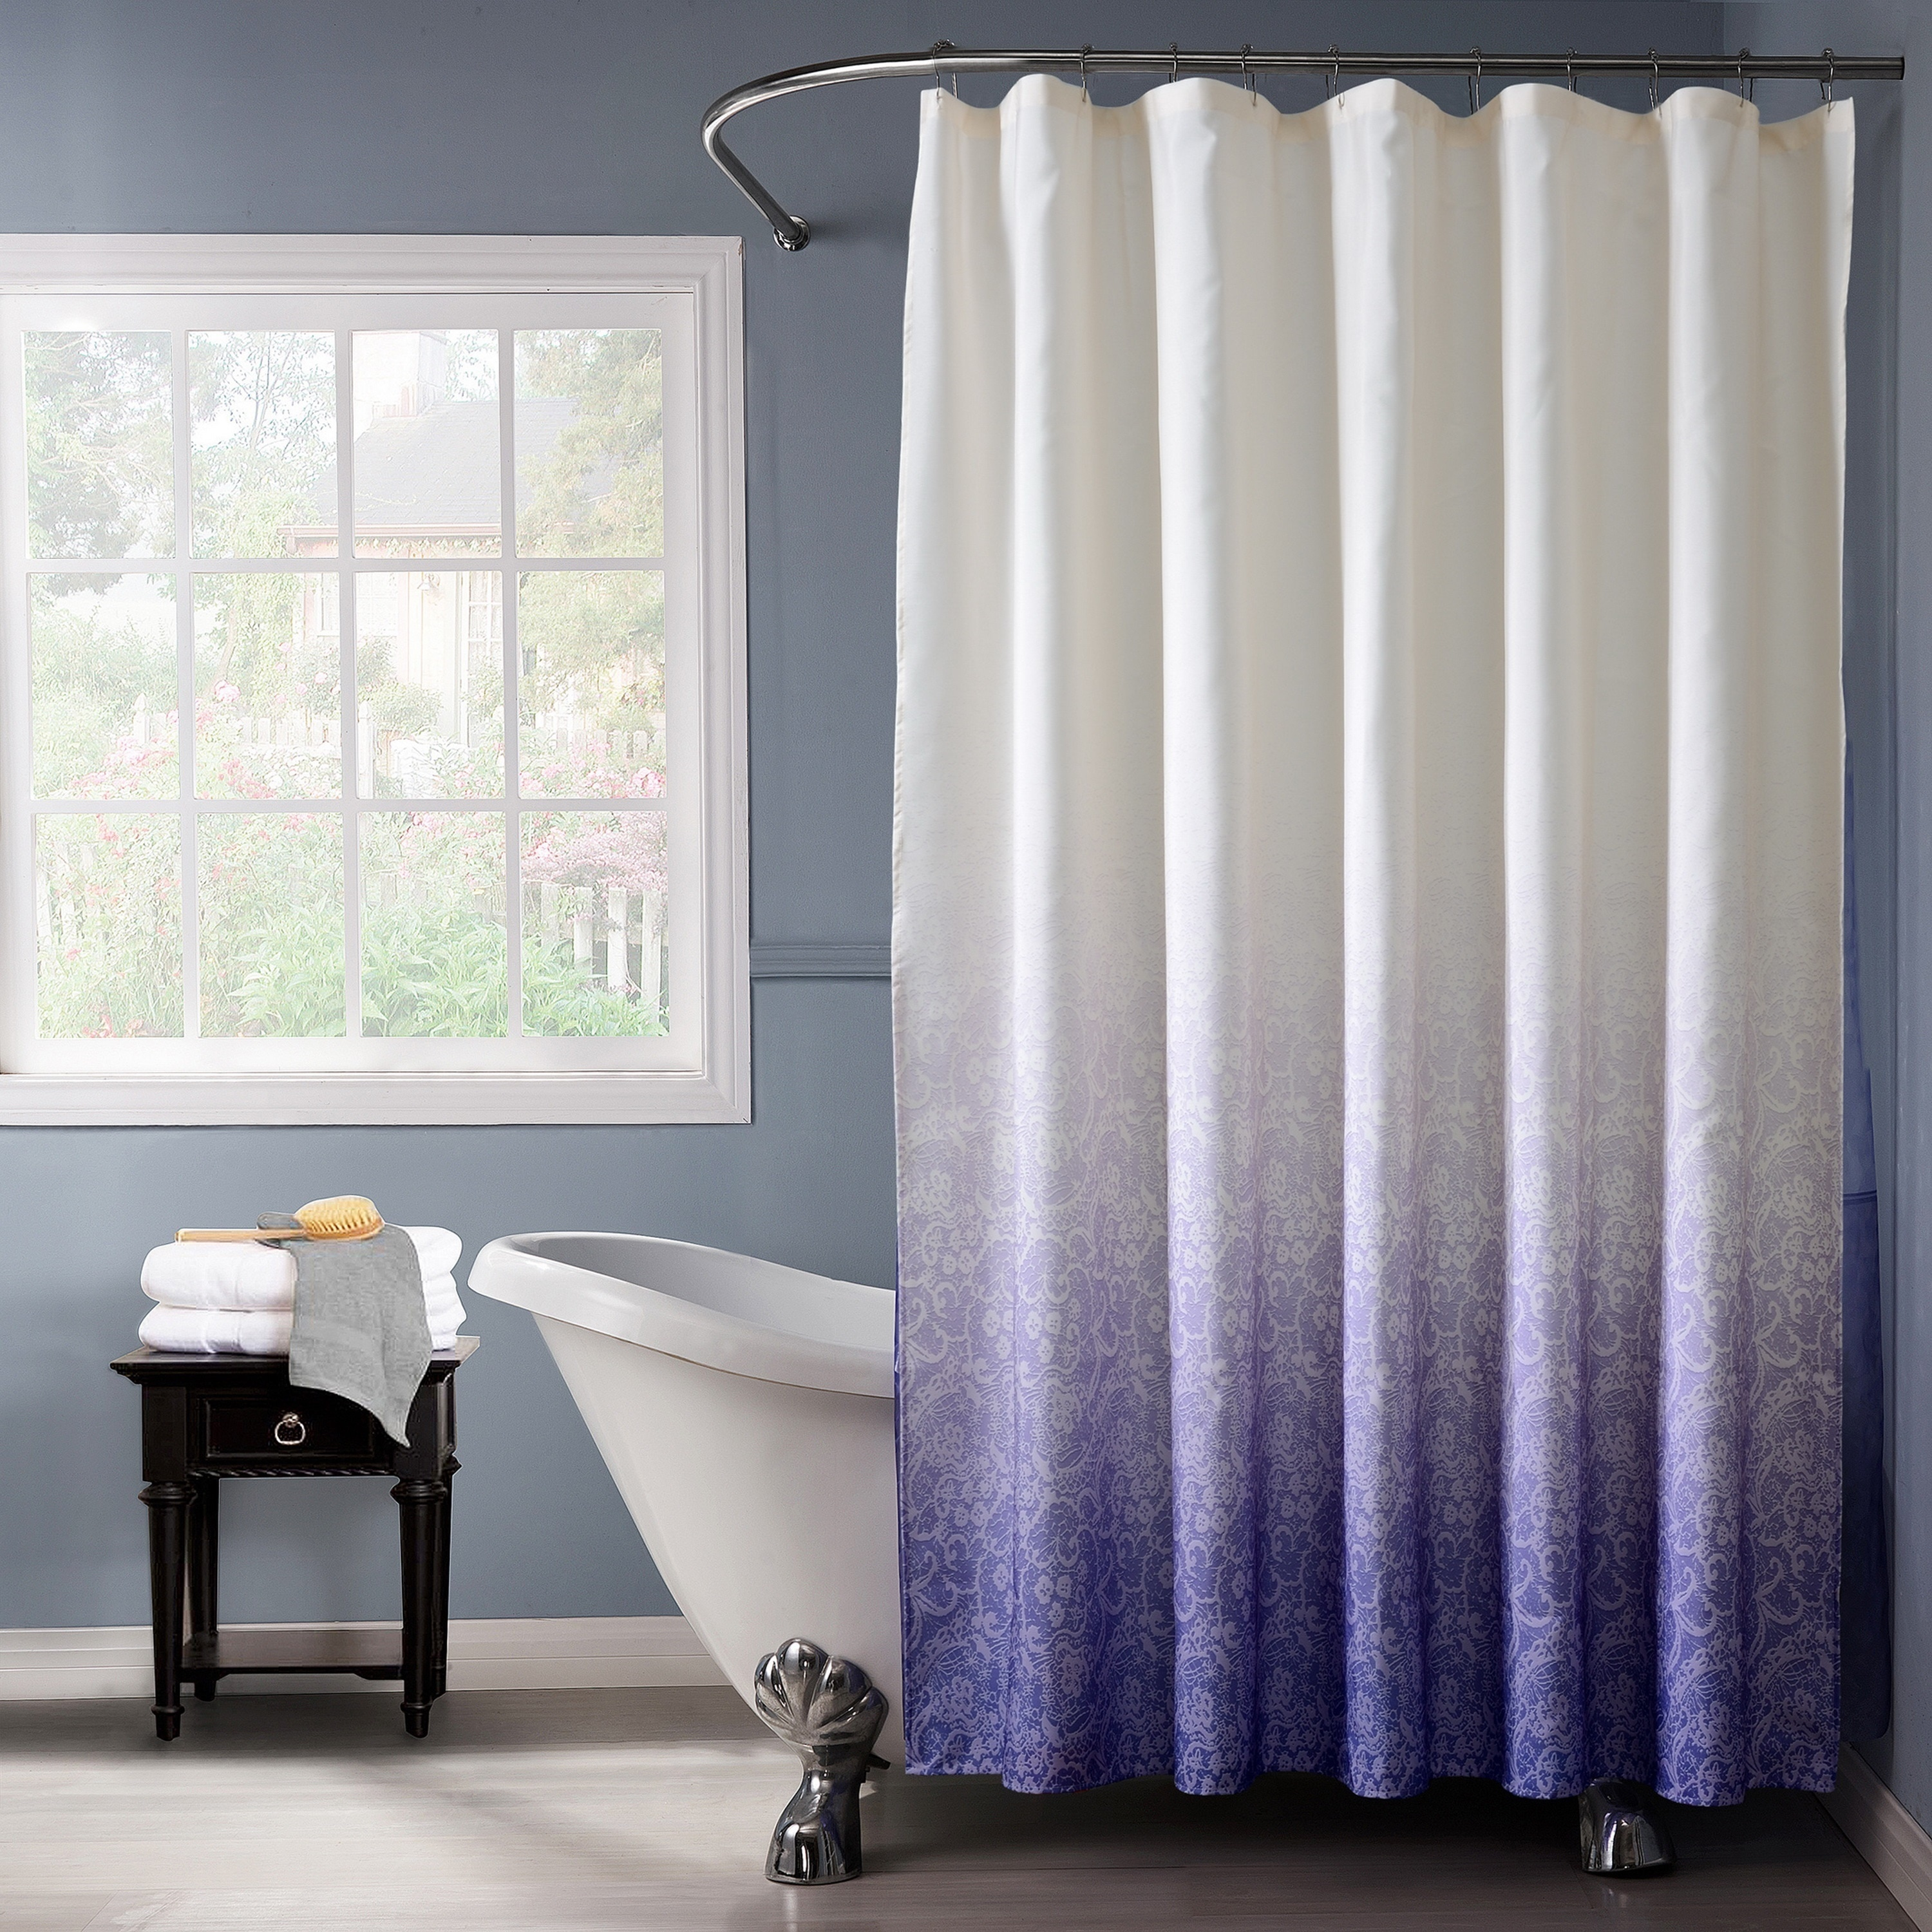 Wonderful Bath Bliss Polyester Lace Printed Ombre Shower Curtain In Purple   Free  Shipping On Orders Over $45   Overstock   19157066